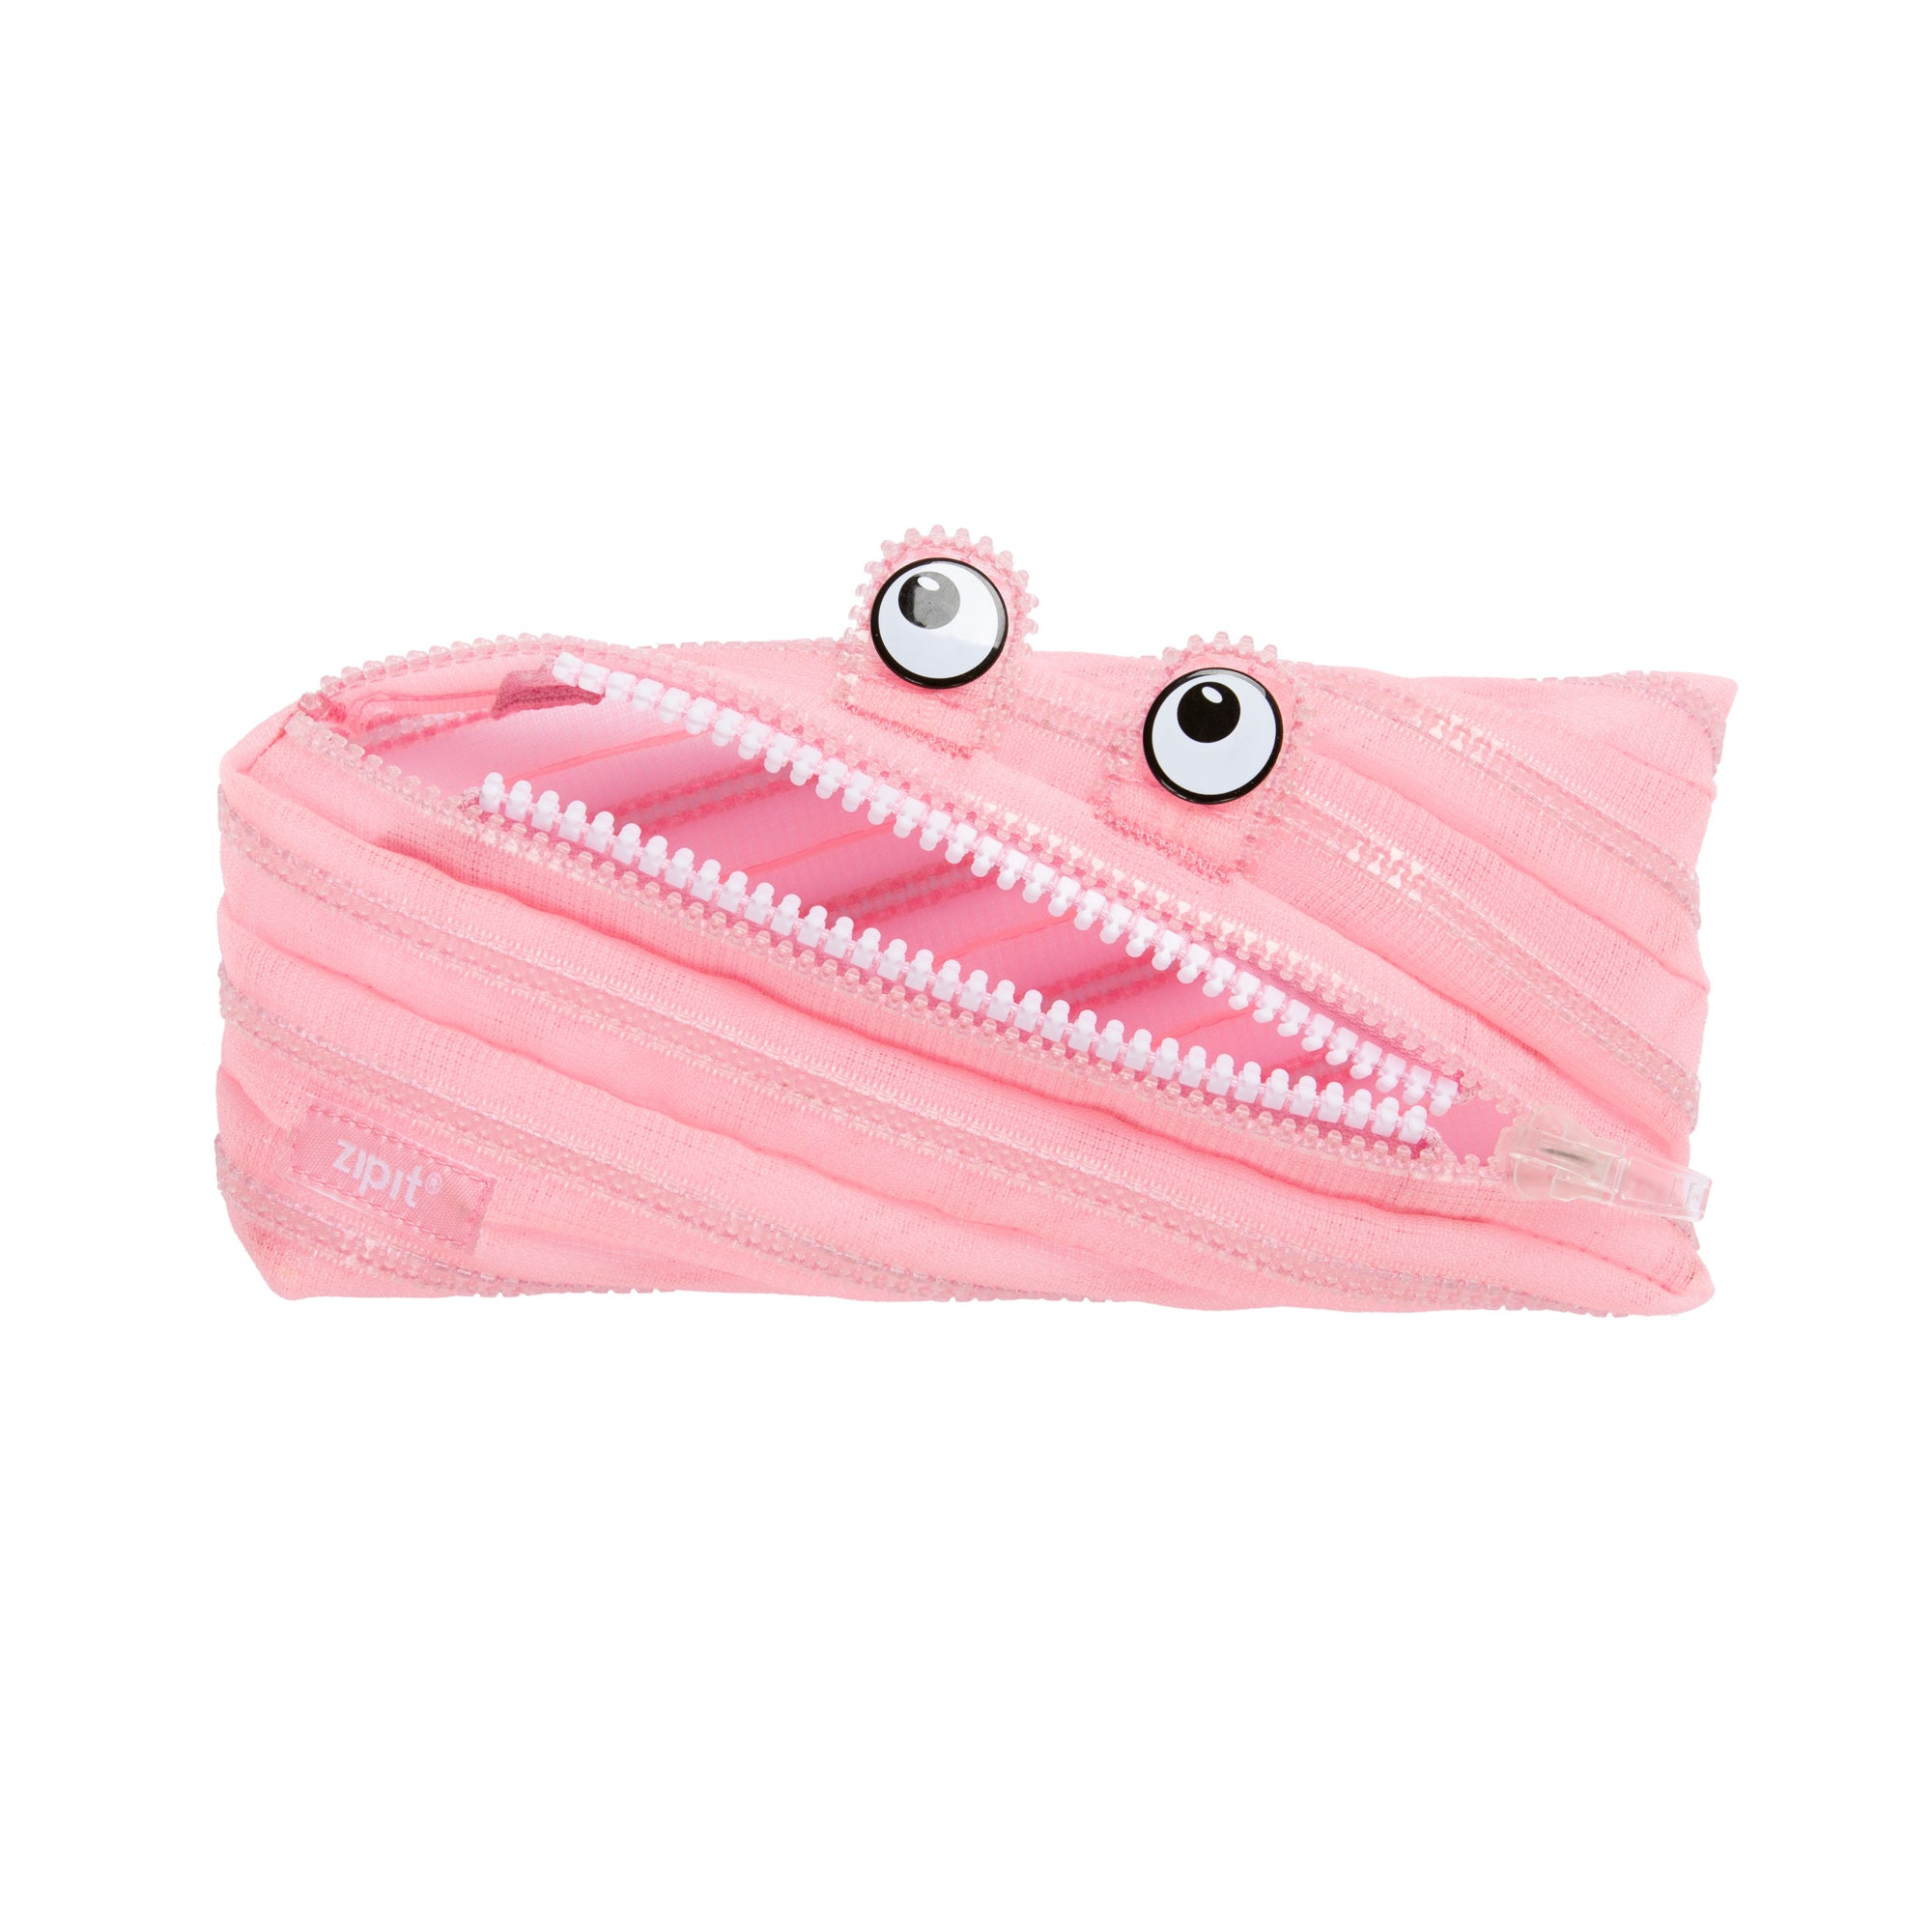 Mesh Monster Pouch Pink - Zigzagme